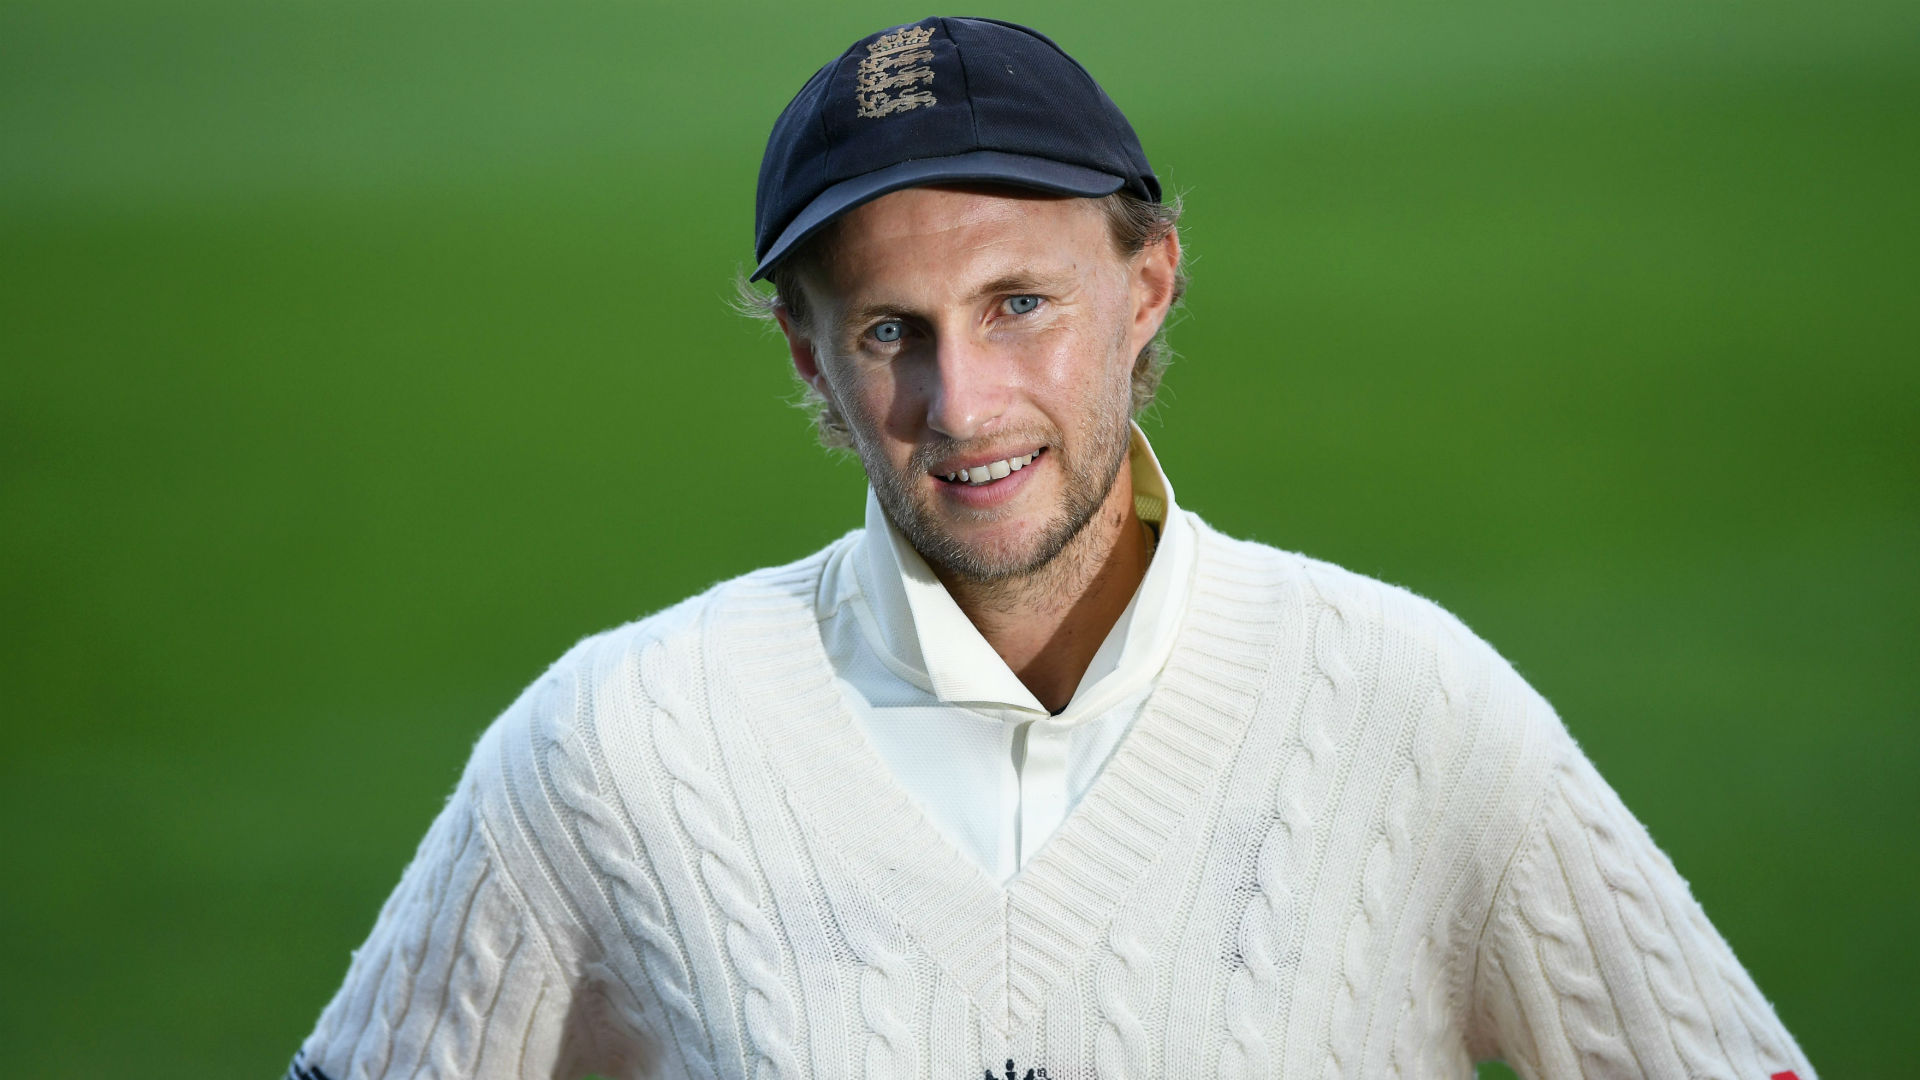 Root retains bright outlook despite 'disappointing' draw in Southampton